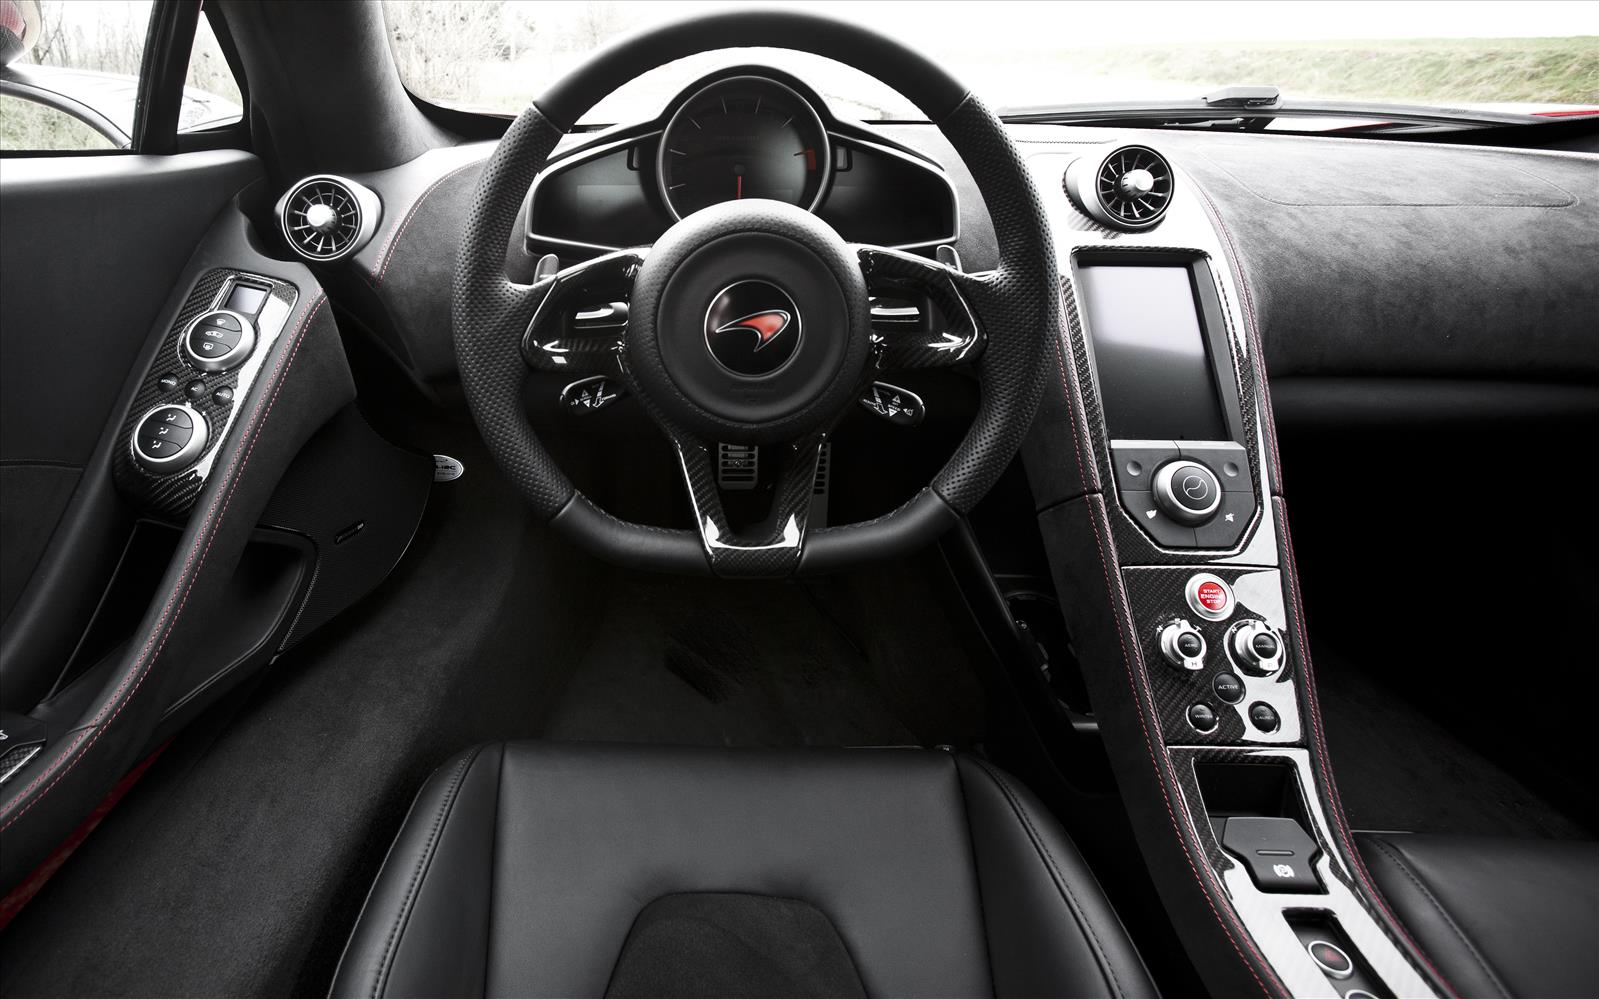 mclaren mp4 12c 2013 interior front seat driver. Black Bedroom Furniture Sets. Home Design Ideas